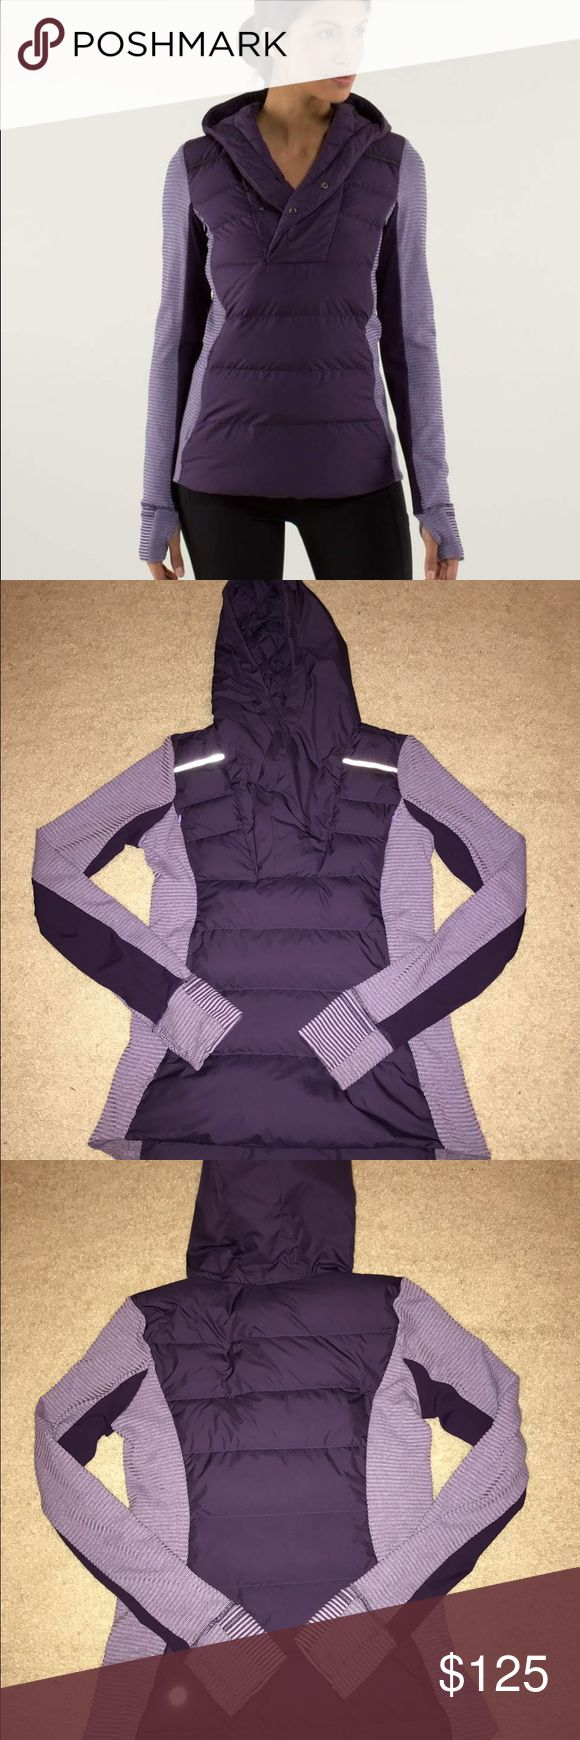 Lululemon Fluff Off Pullover Like New Sz 6 Like new condition. Size 6. Rip tag has been removed but size dot indicated size 6. No stains no tears no pilling. Only worn twice. Lovely pullover, discontinued style. NO TRADES, cheaper through PayPal or mercari lululemon athletica Jackets & Coats